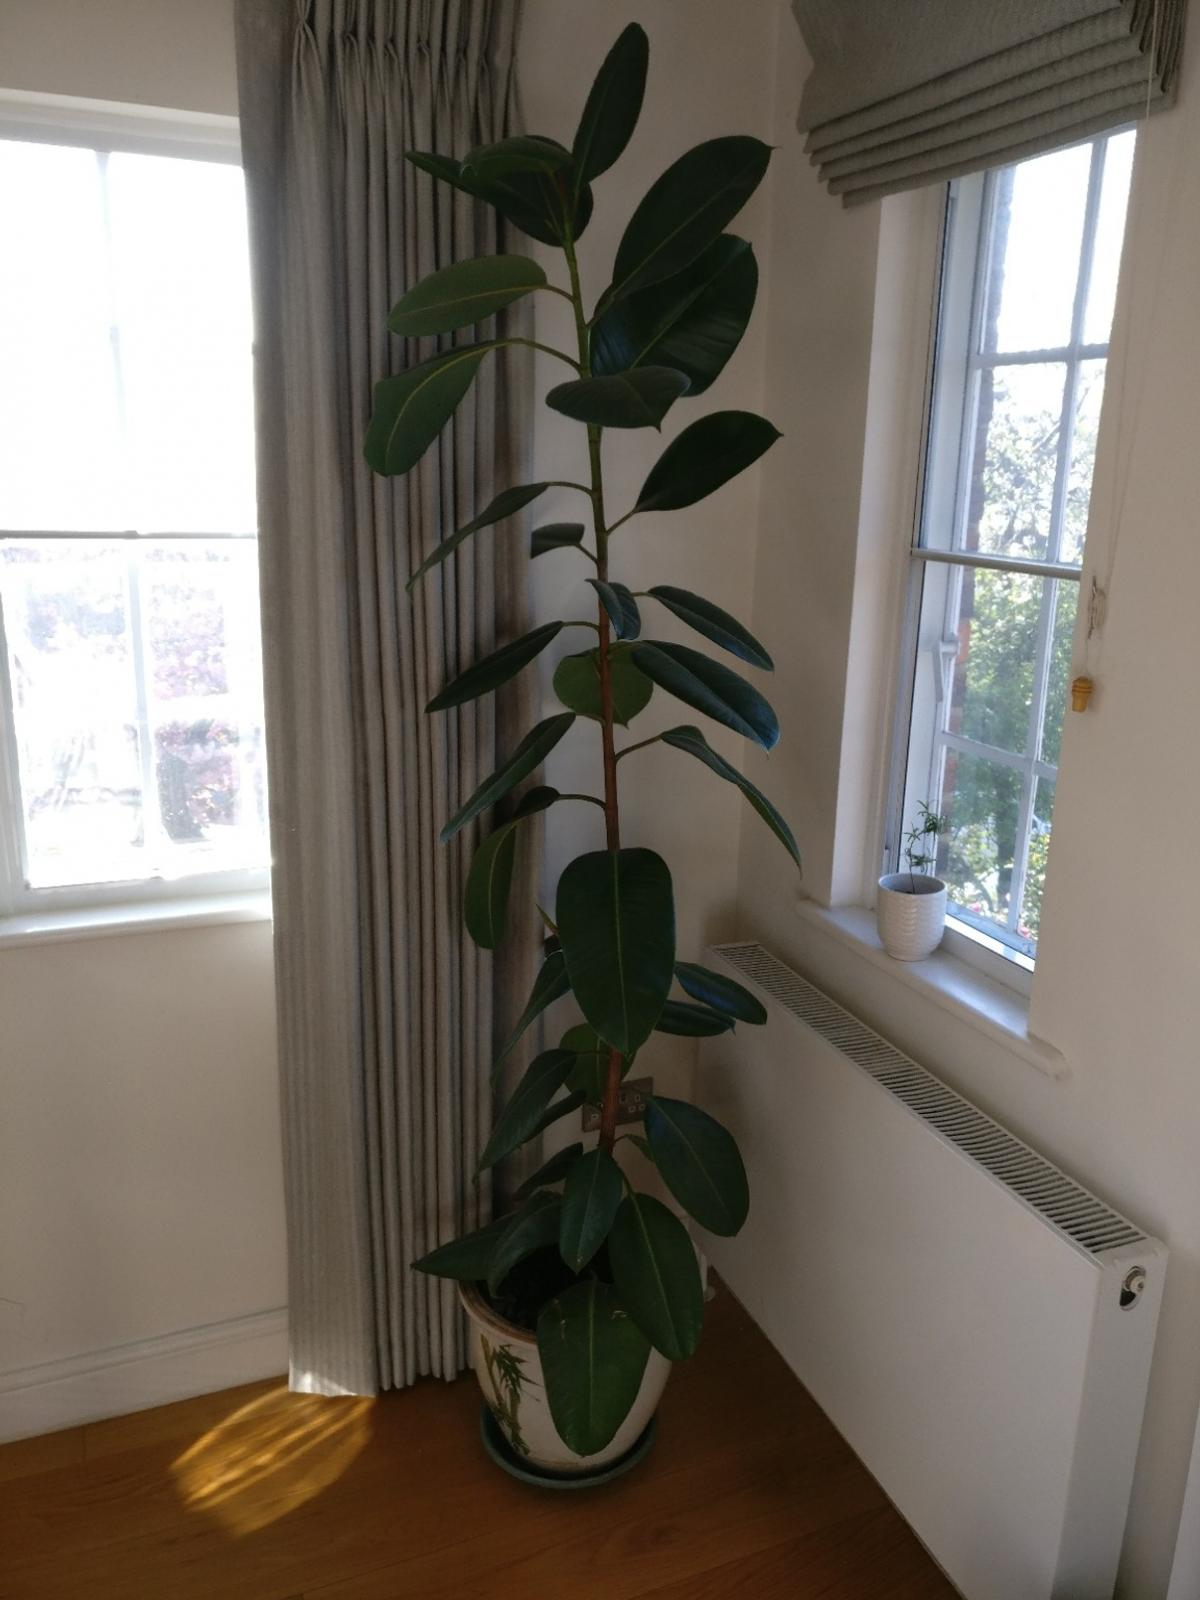 7ft Rubber Plant And Pot In N2 Barnet For 80 00 For Sale Shpock